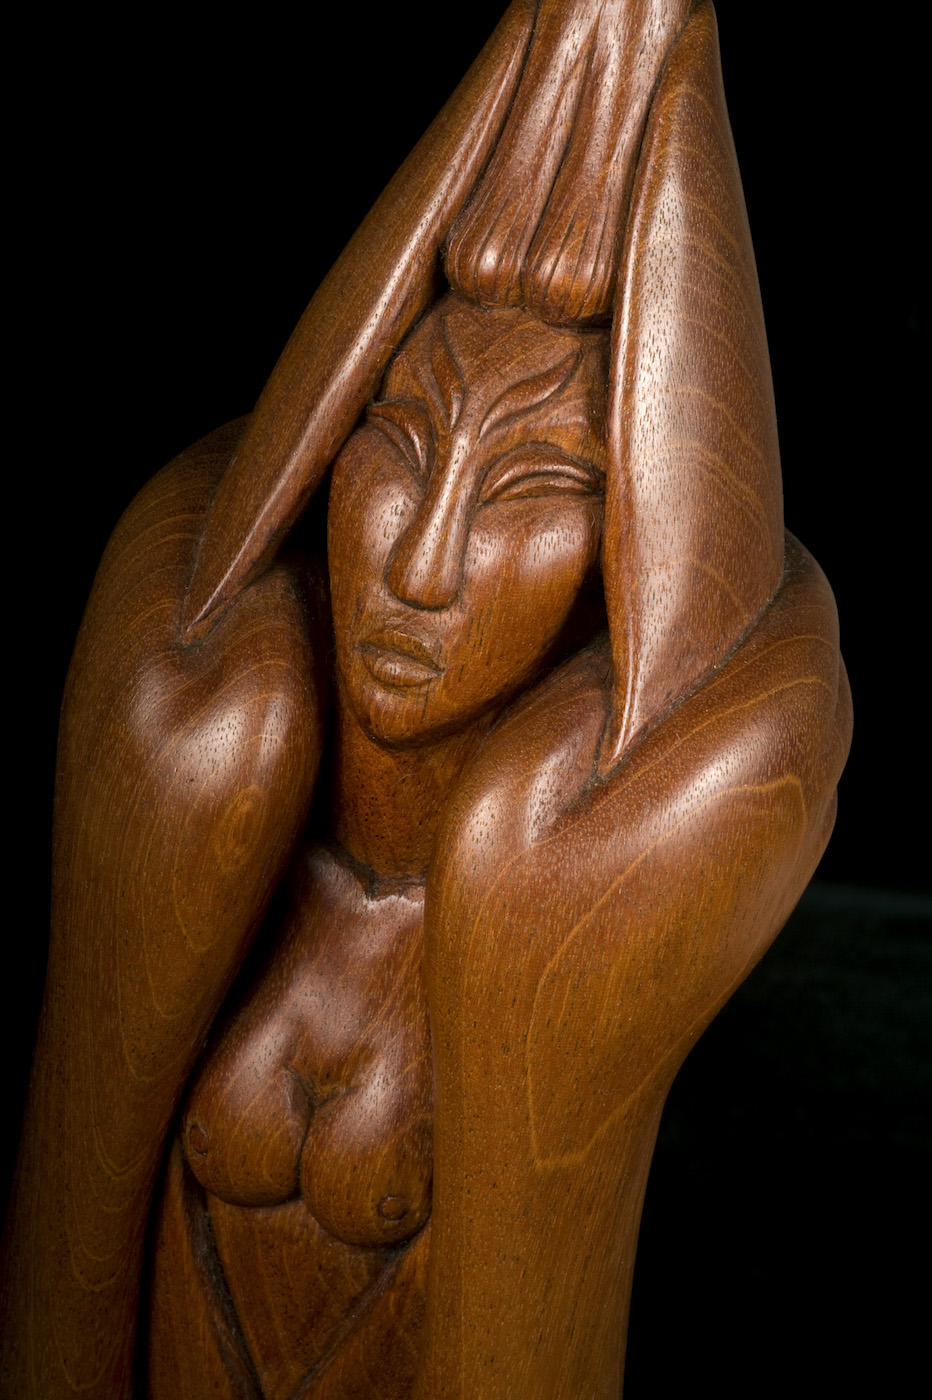 """Willard Stone, """"Birth of Atomic Energy"""" (nd), wood, 23 × 4 3/4 × 4 3/4 inches (courtesy Gilcrease Museum)"""